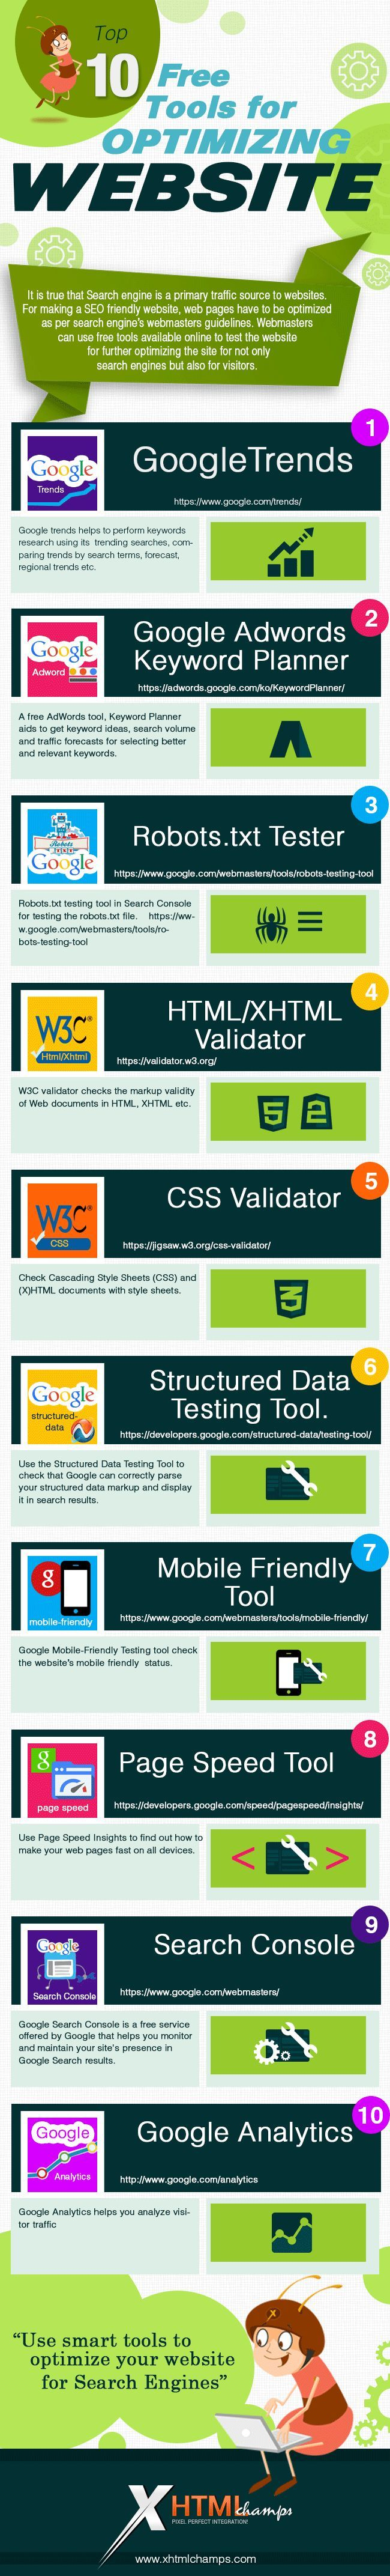 """10 Free Tools for Optimizing a Website"" #infographic #seo seotools shared by #semanticmastery"